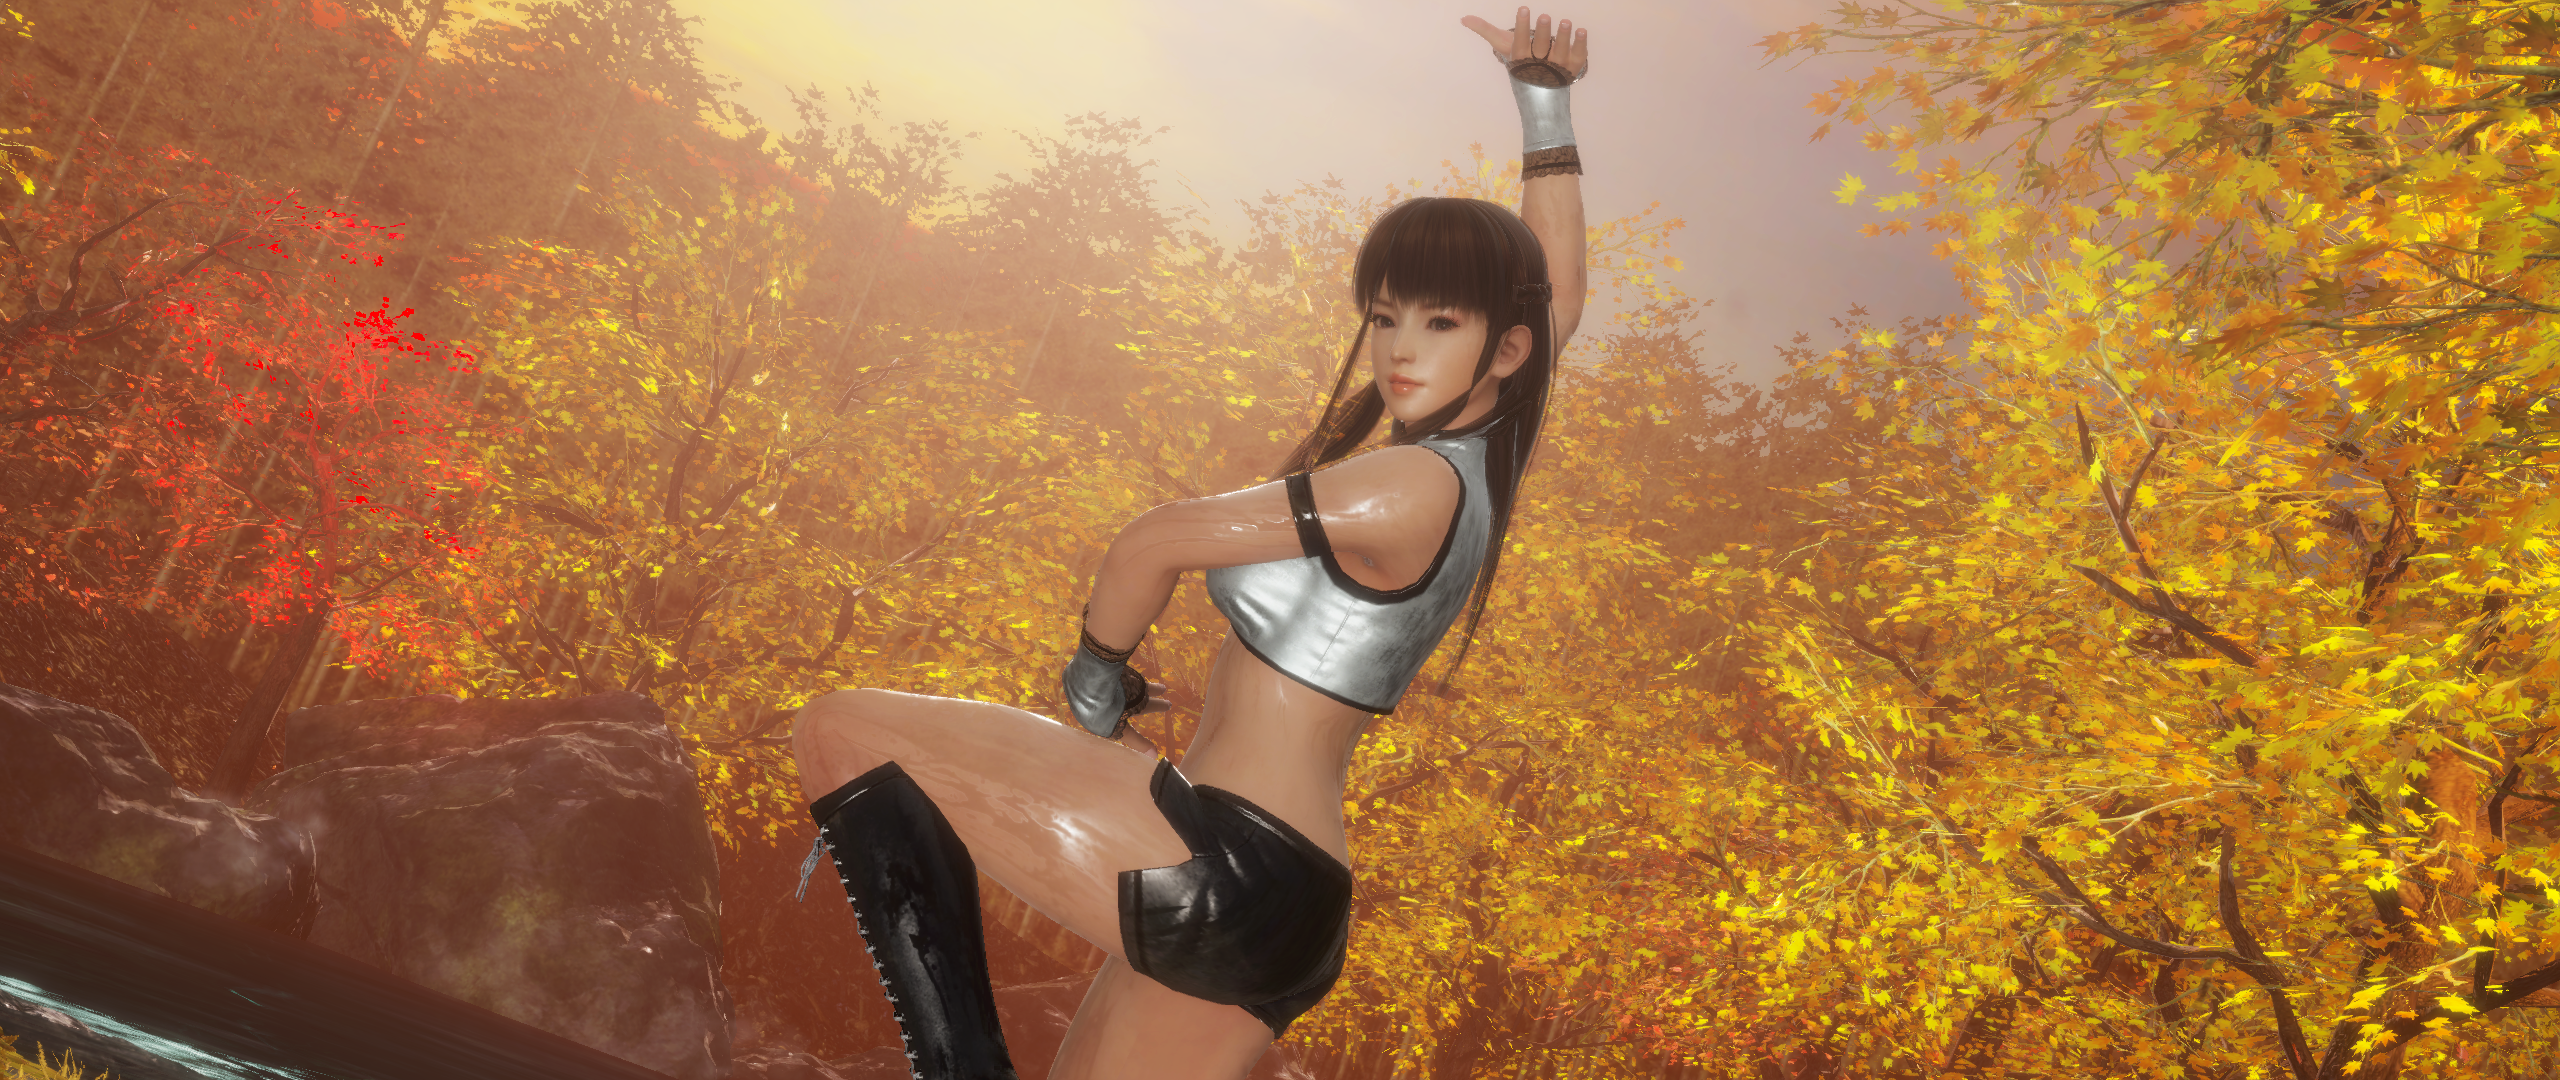 DOA6 Screenshot 2020.02.21 - 18.34.13.75.png - Dead or Alive 6